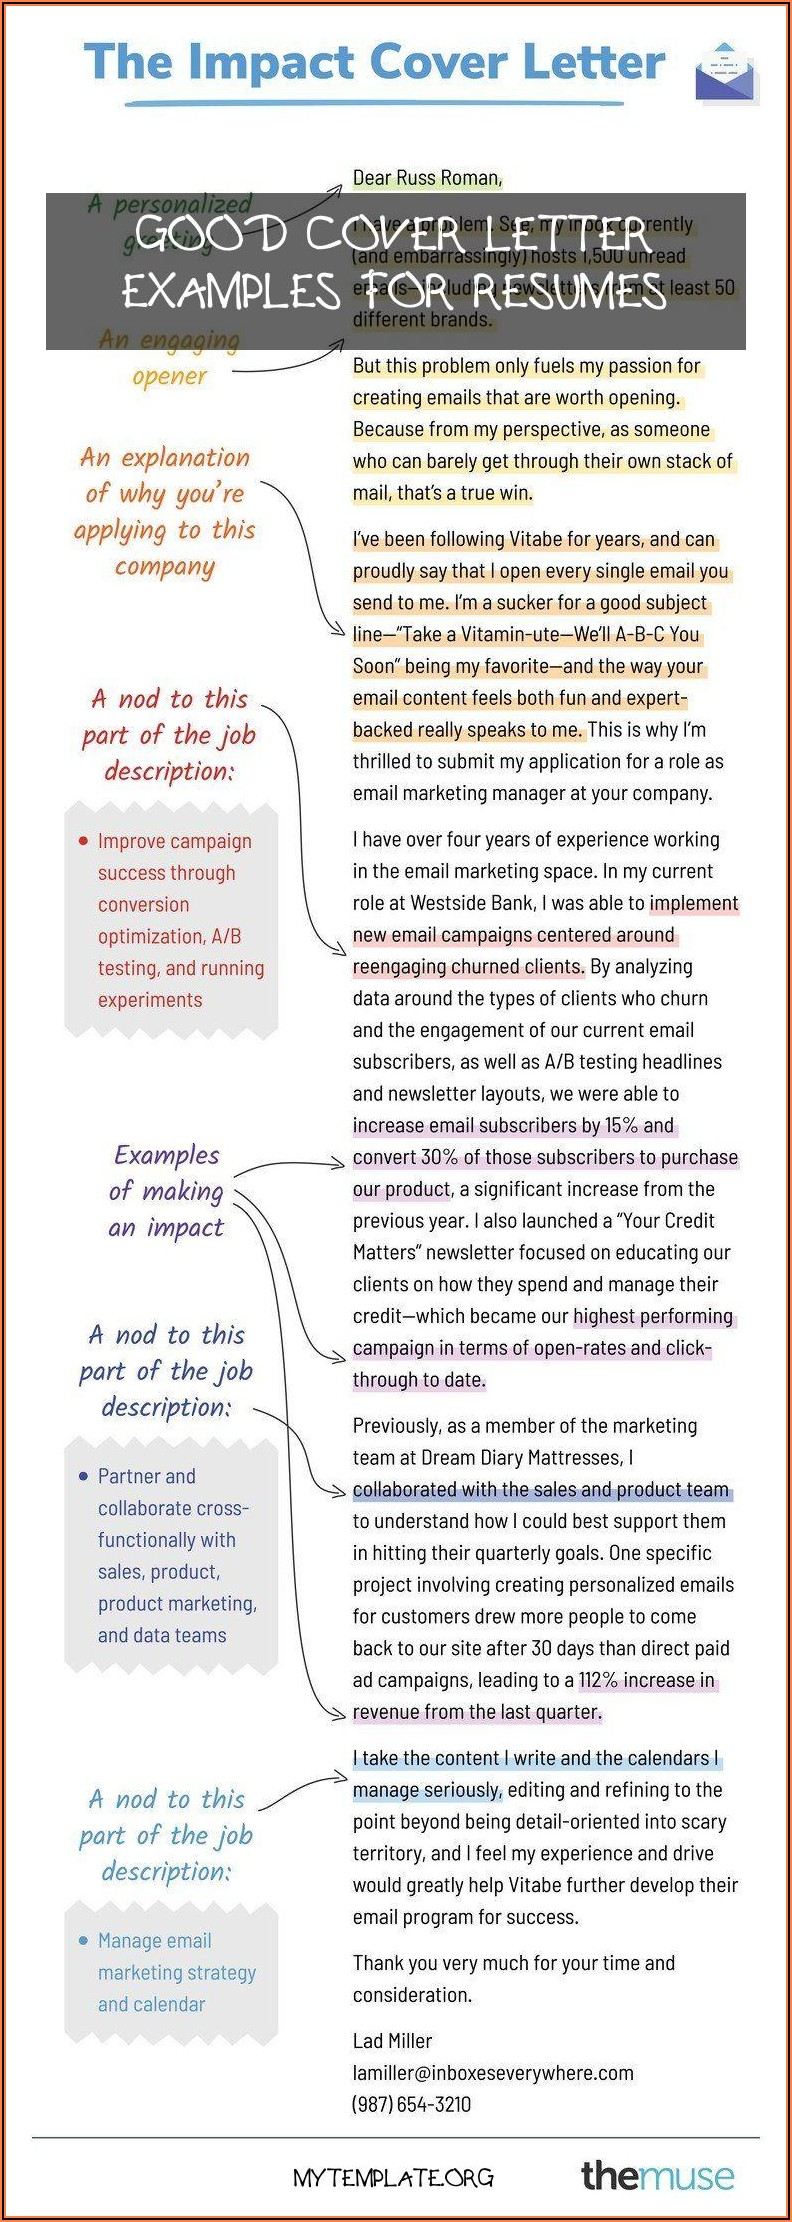 Good Cover Letter Examples For Resumes